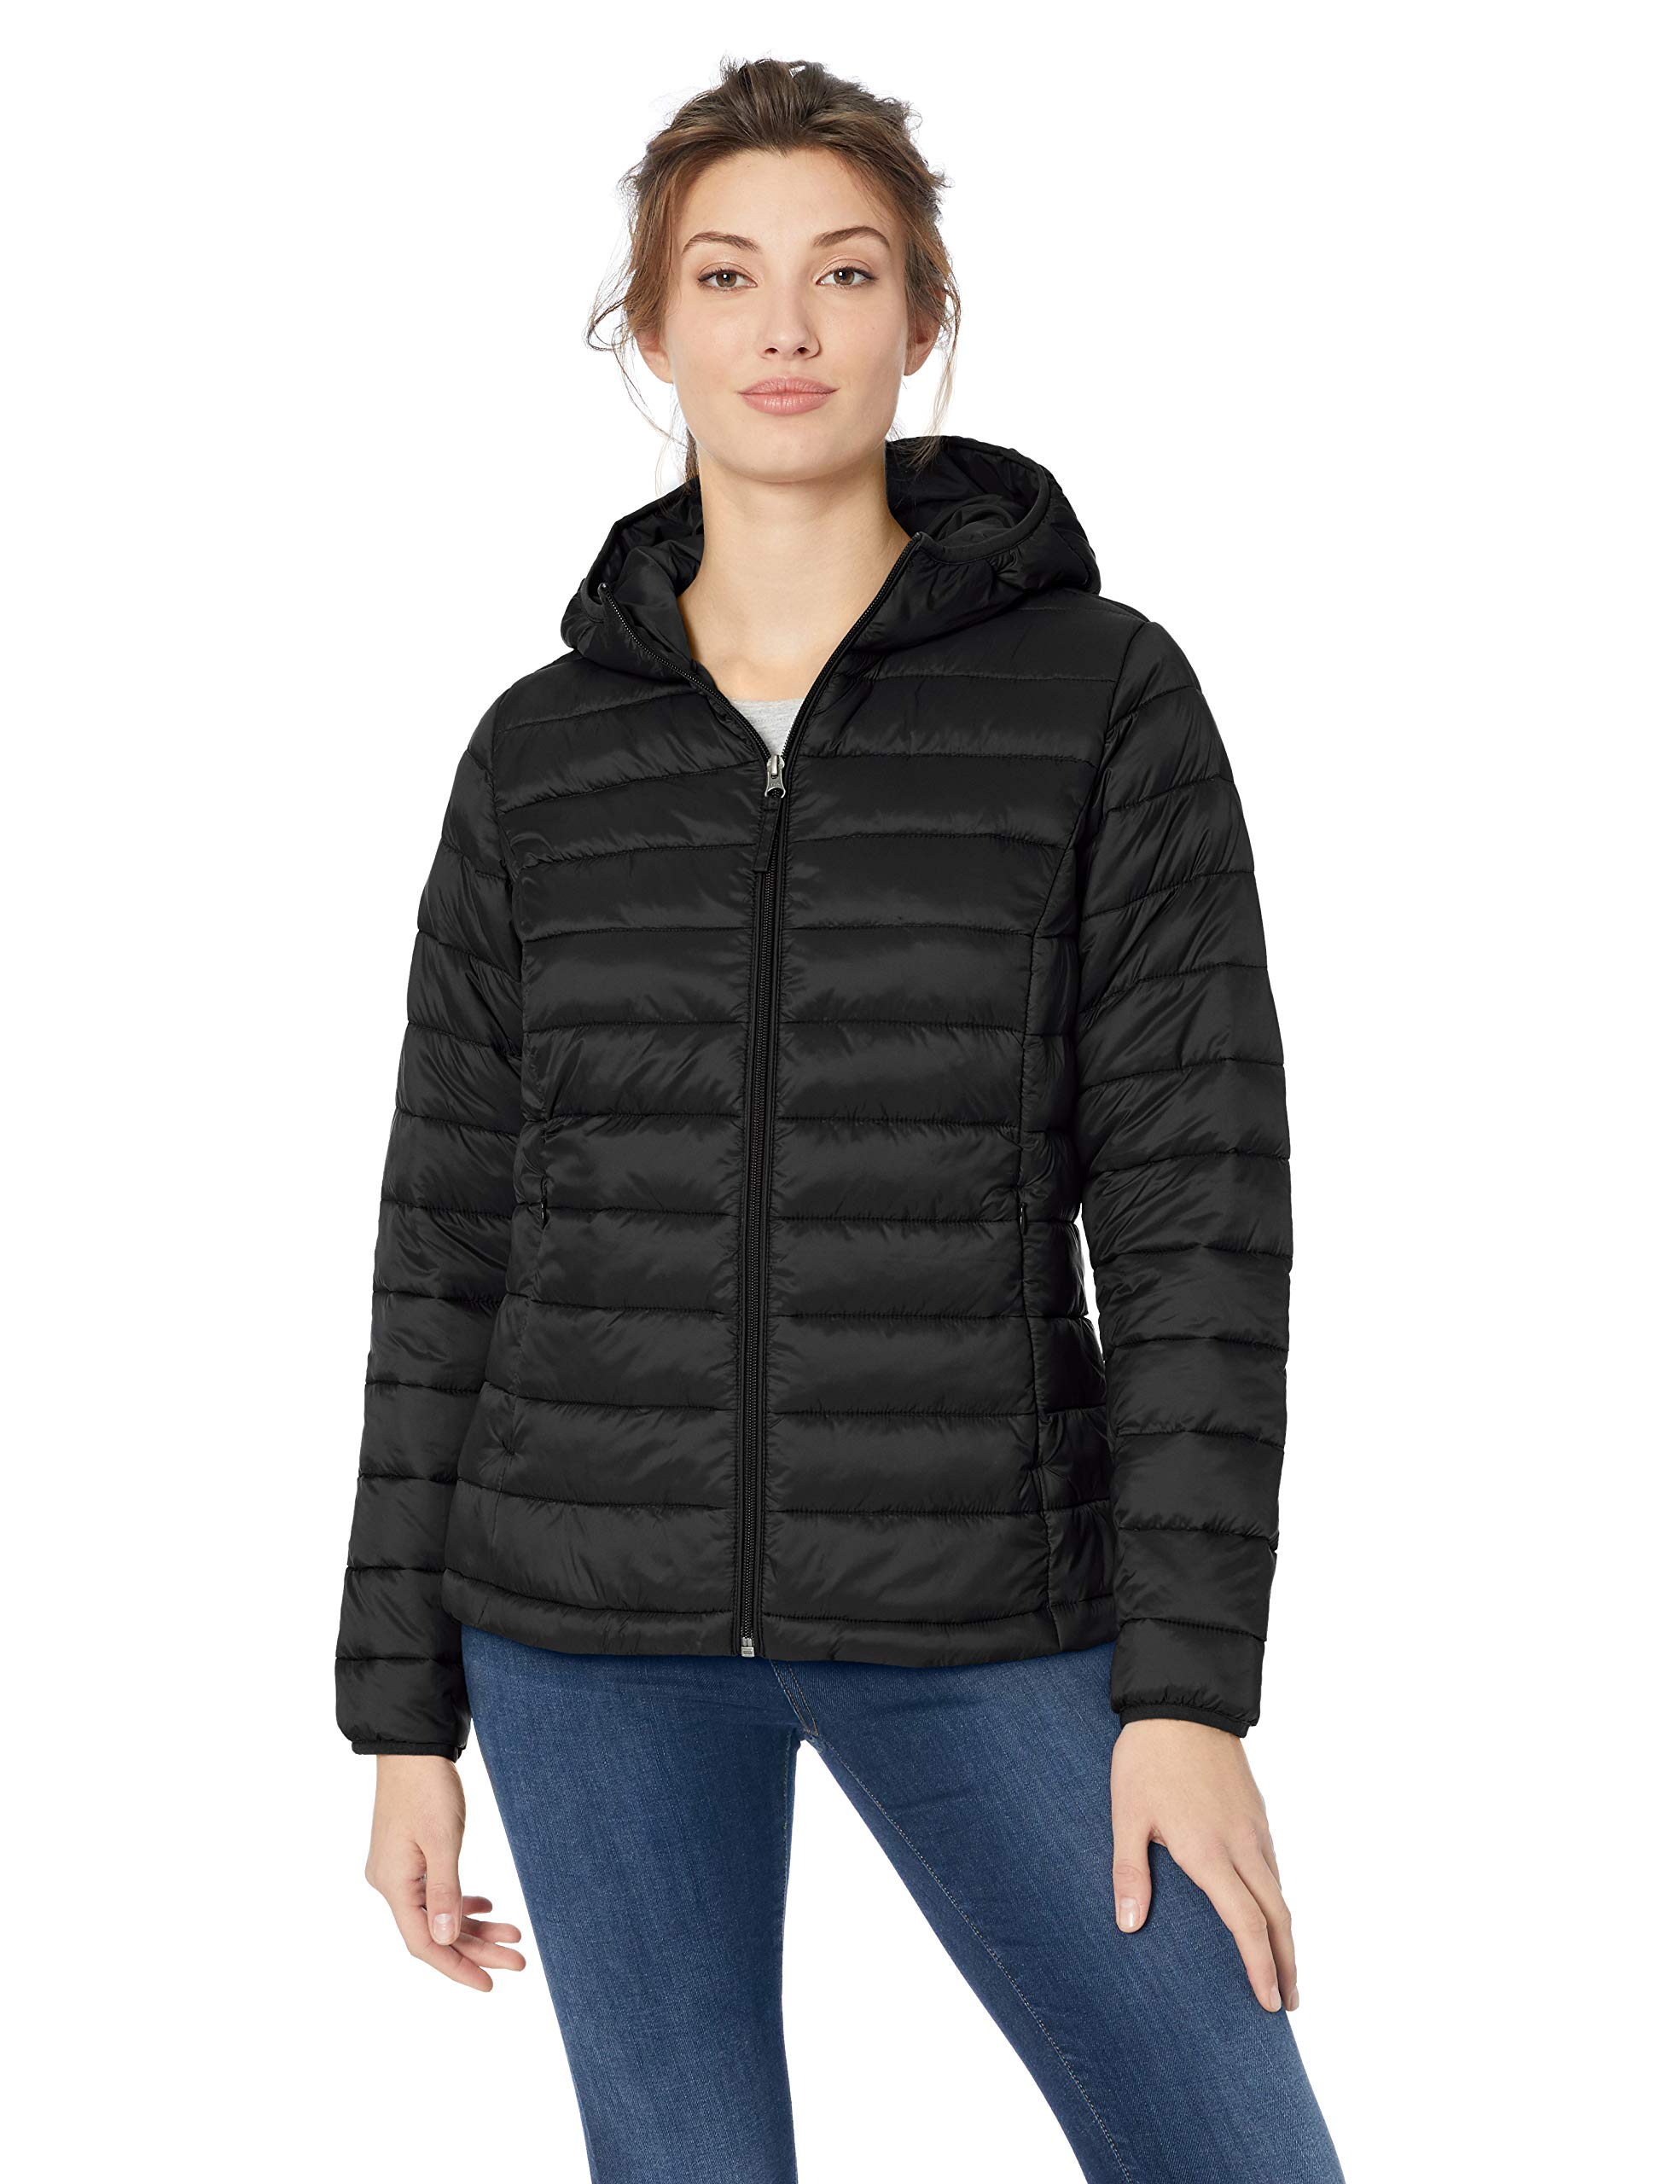 Amazon Essentials Women's Lightweight Water-Resistant Packable Hooded Puffer Jacket, Black, Medium by Amazon Essentials